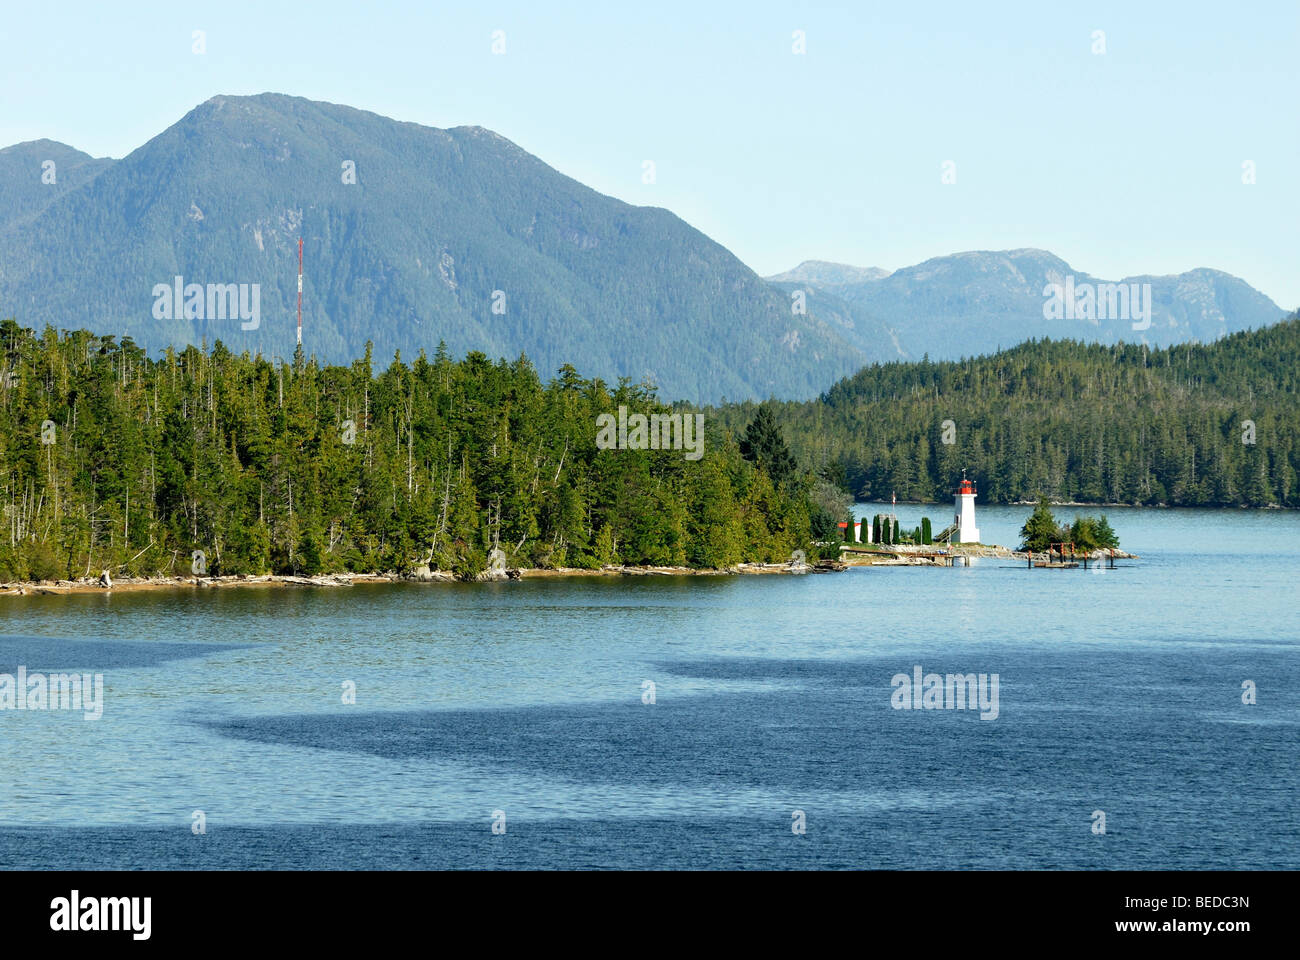 Lighthouse on a peninsula on the Inside Passage, British Columbia, Canada, North America - Stock Image